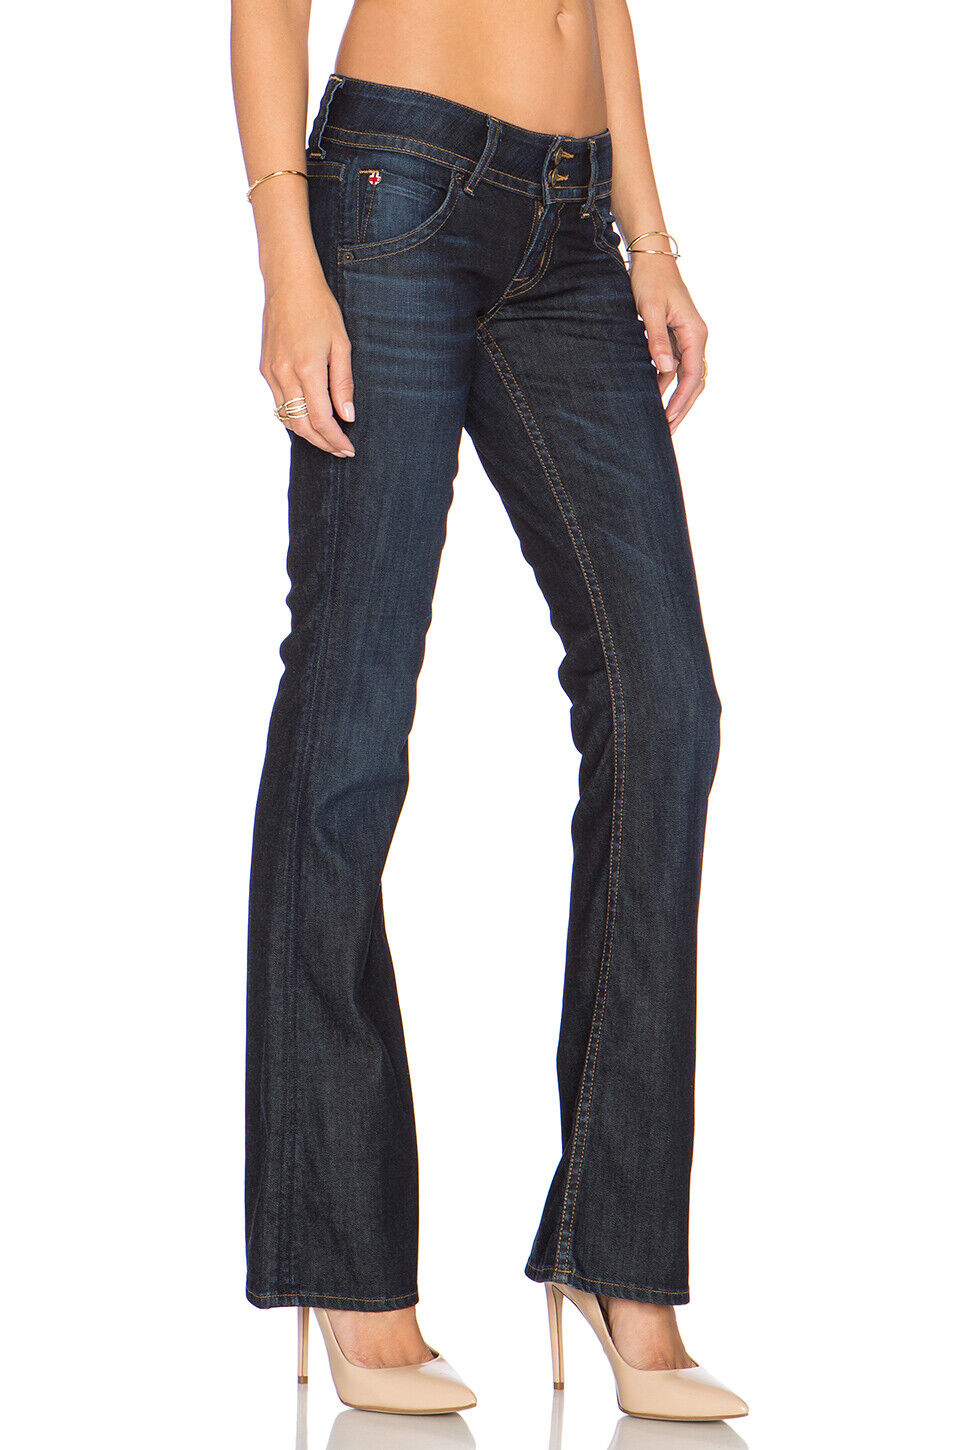 HUDSON Jeans Signature Bootcut Size 28 color Firefly